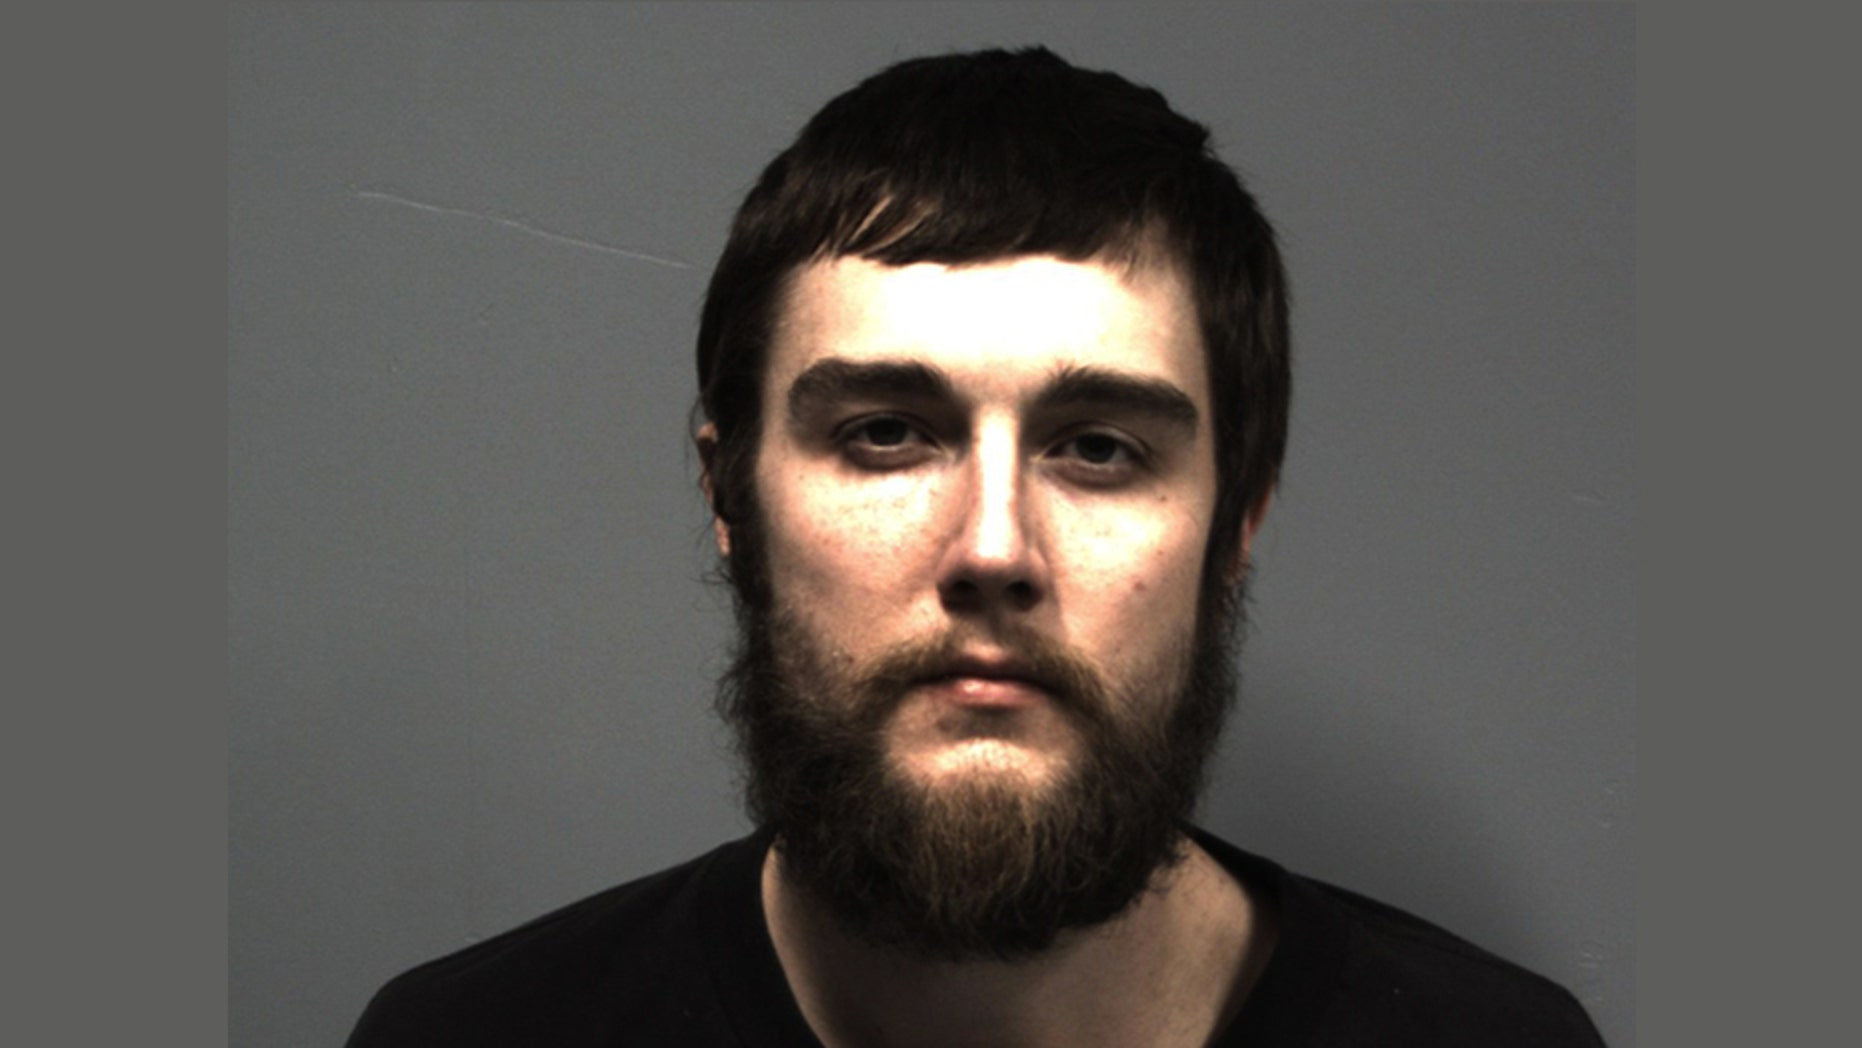 Patrick Laubenstein, 27, was charged with abuse/ neglect of an elderly person and failure to stop for police after officials say he allegedly tried to take money from his grandmother's bank account, ultimately leading to a police chase.